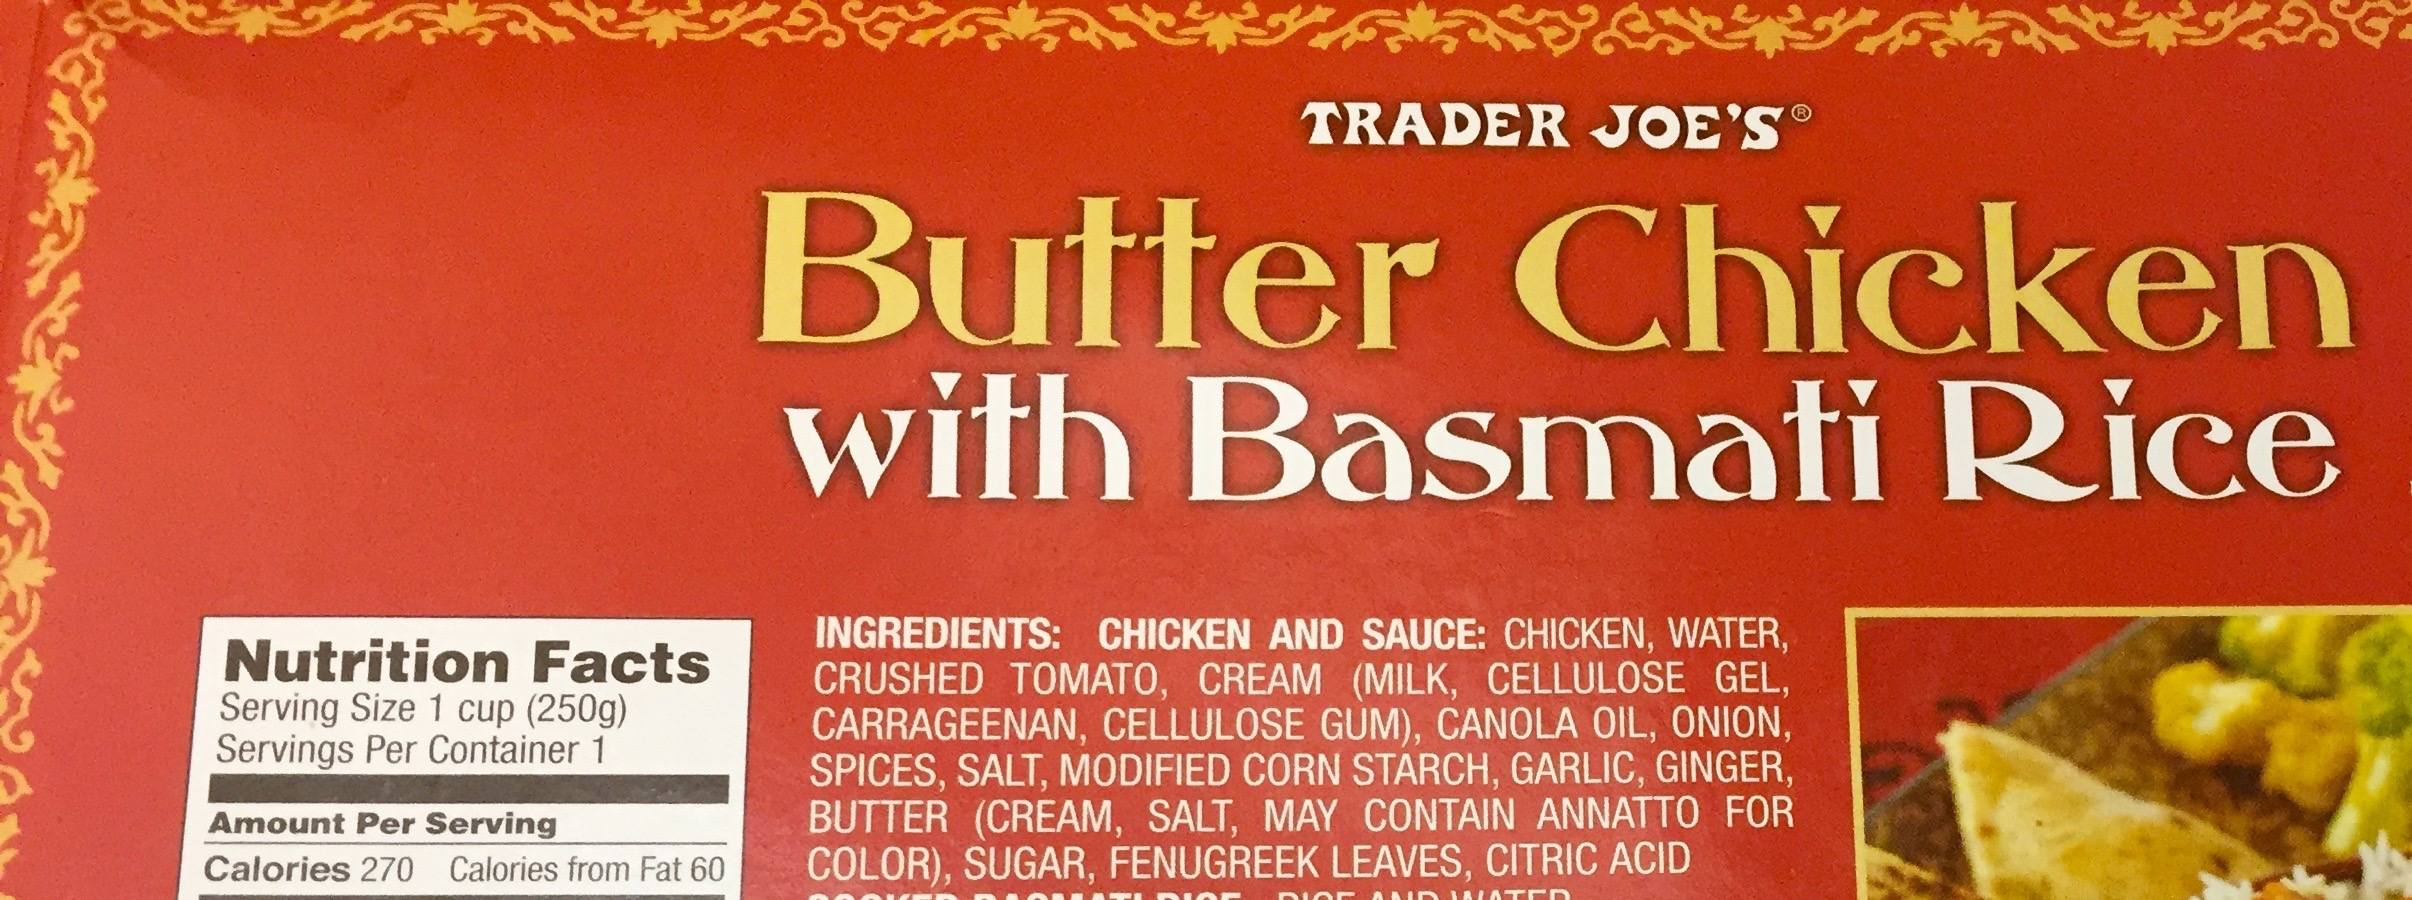 Trader Joe's Butter Chicken - conflicting nutritional info